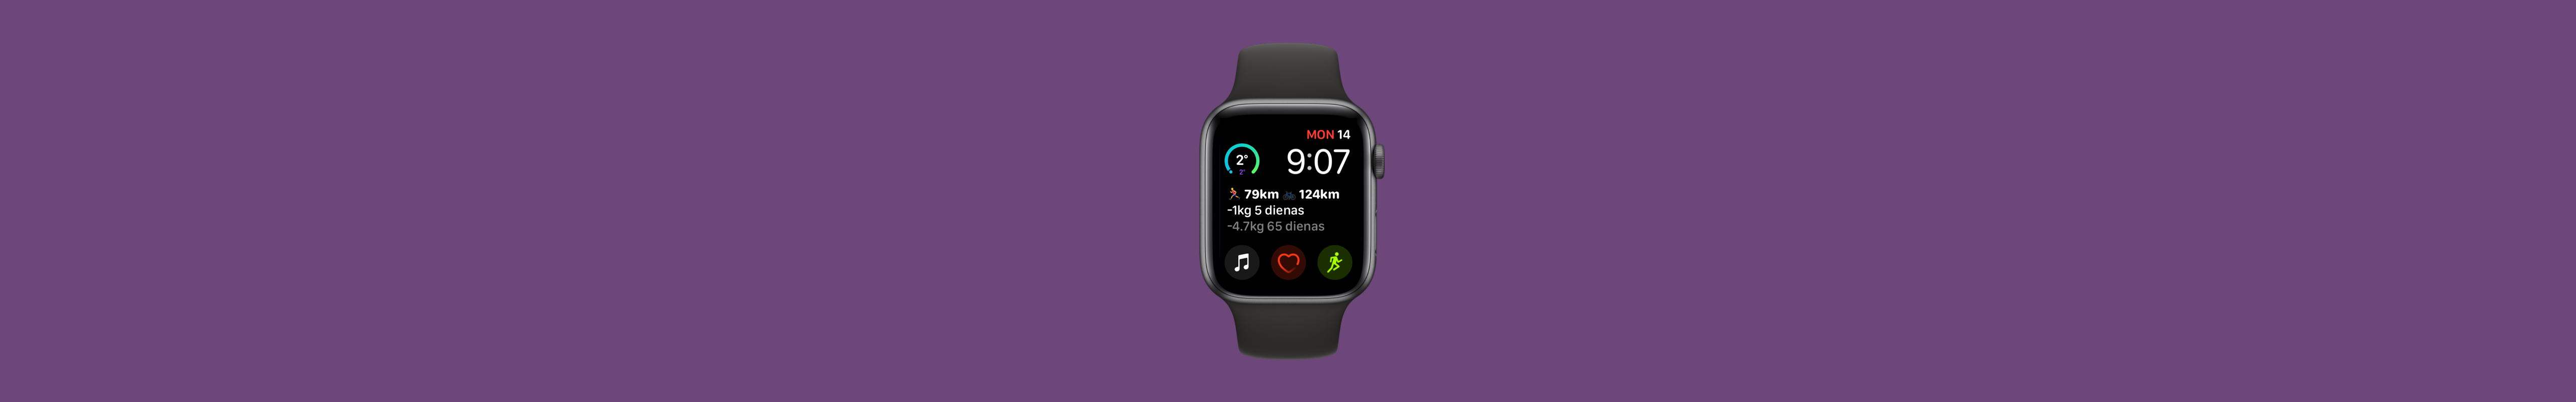 Izveido pats savu Apple Watch complication ar Pushover Glances API